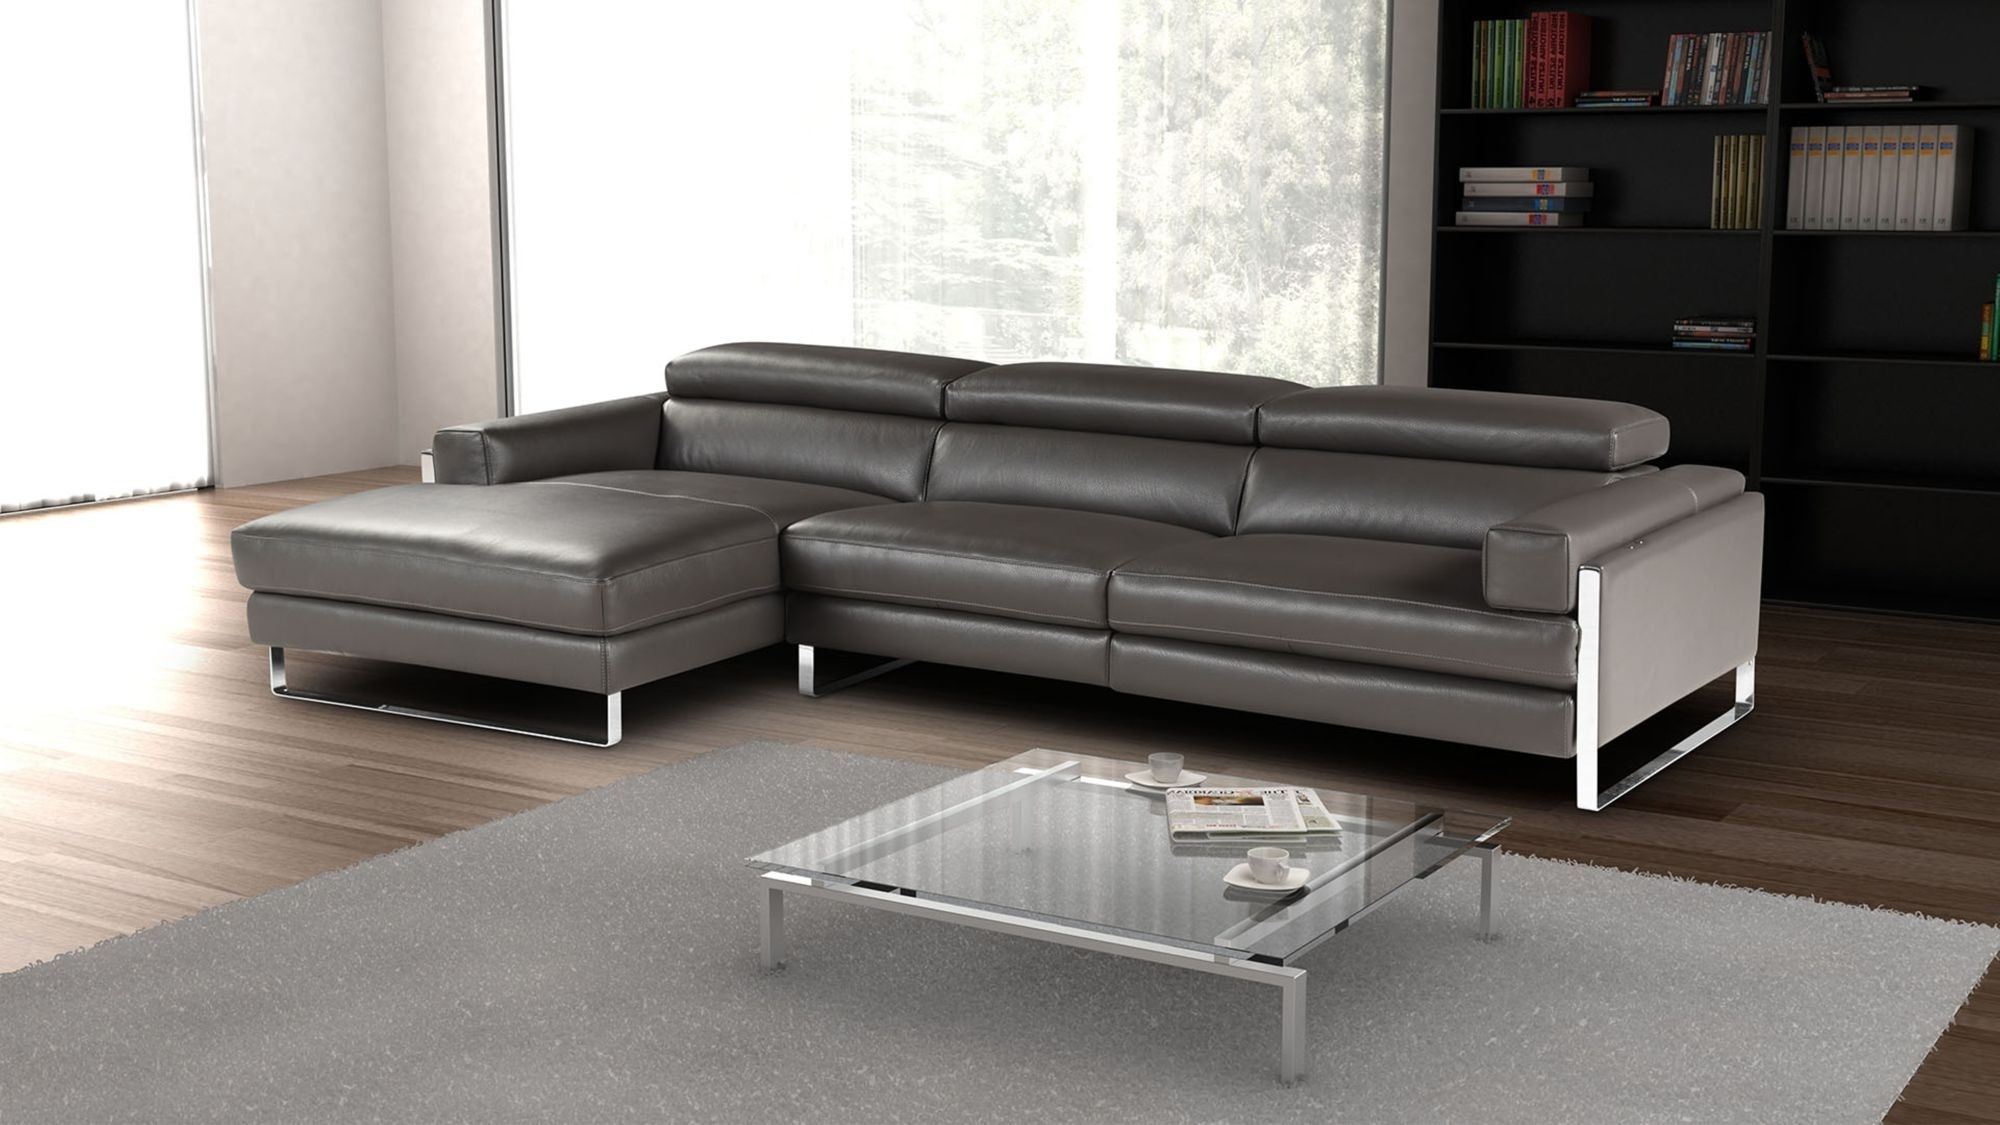 Kellanght Sectional Sofa Angled Empress Arm Jackson Domino Piece For Well Known Regina Sectional Sofas (View 10 of 20)